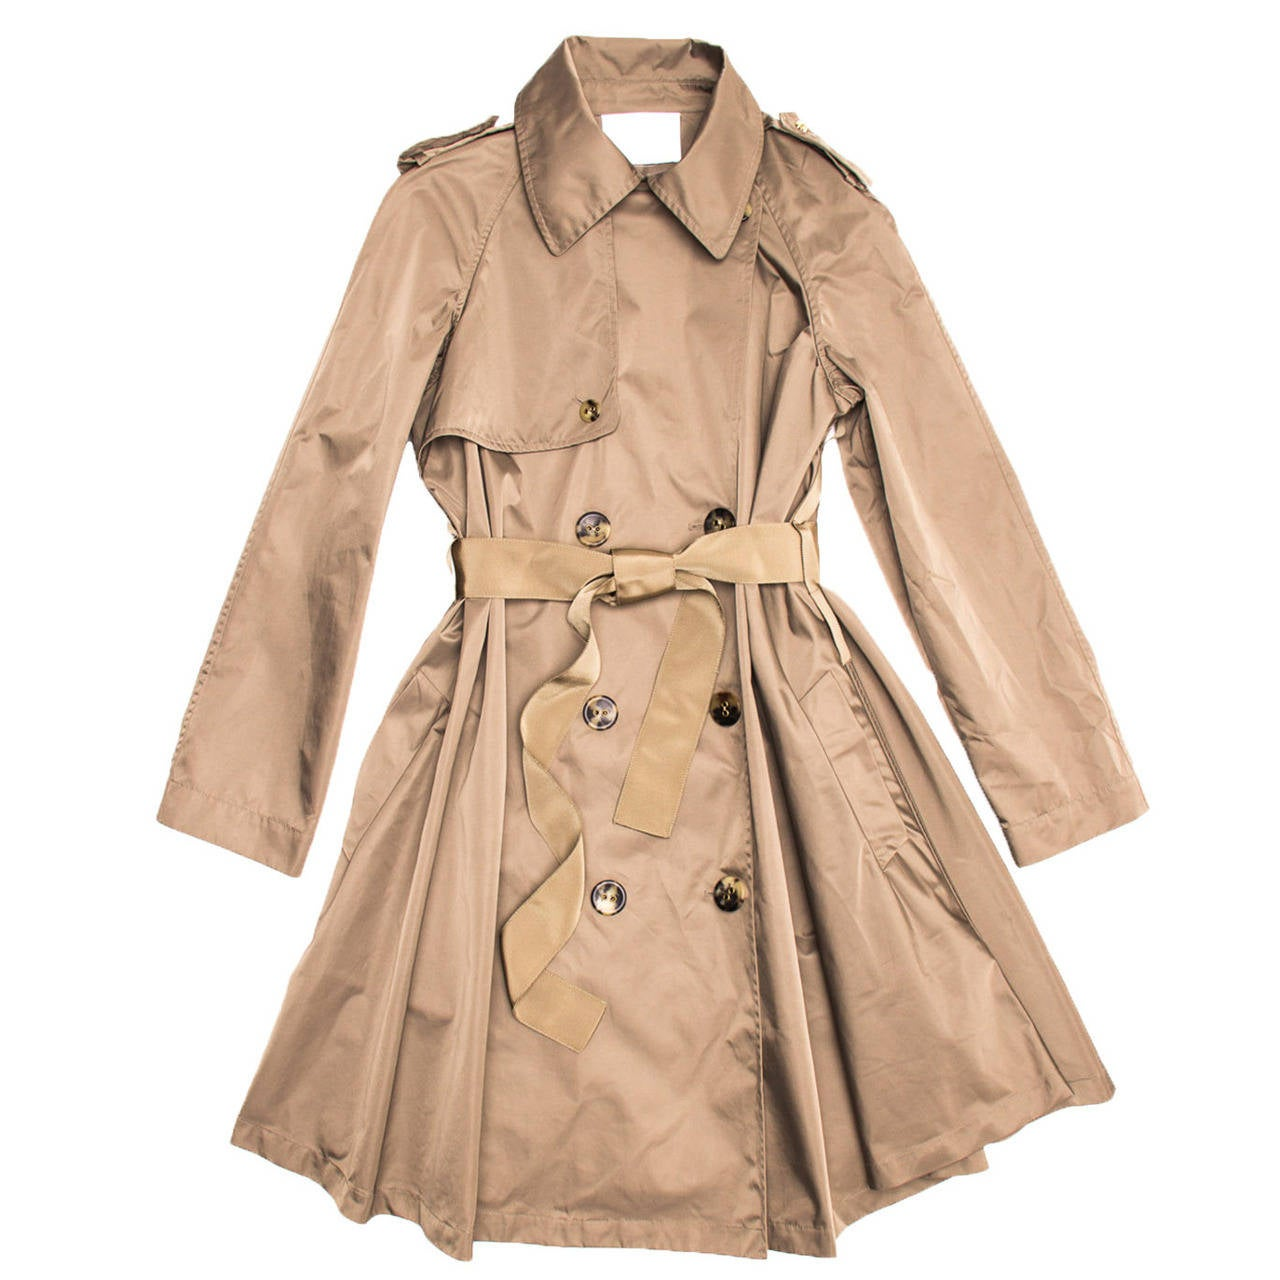 Lanvin Coat - 2008 Taupe Bell Shape Raincoat With Ribbon Belt